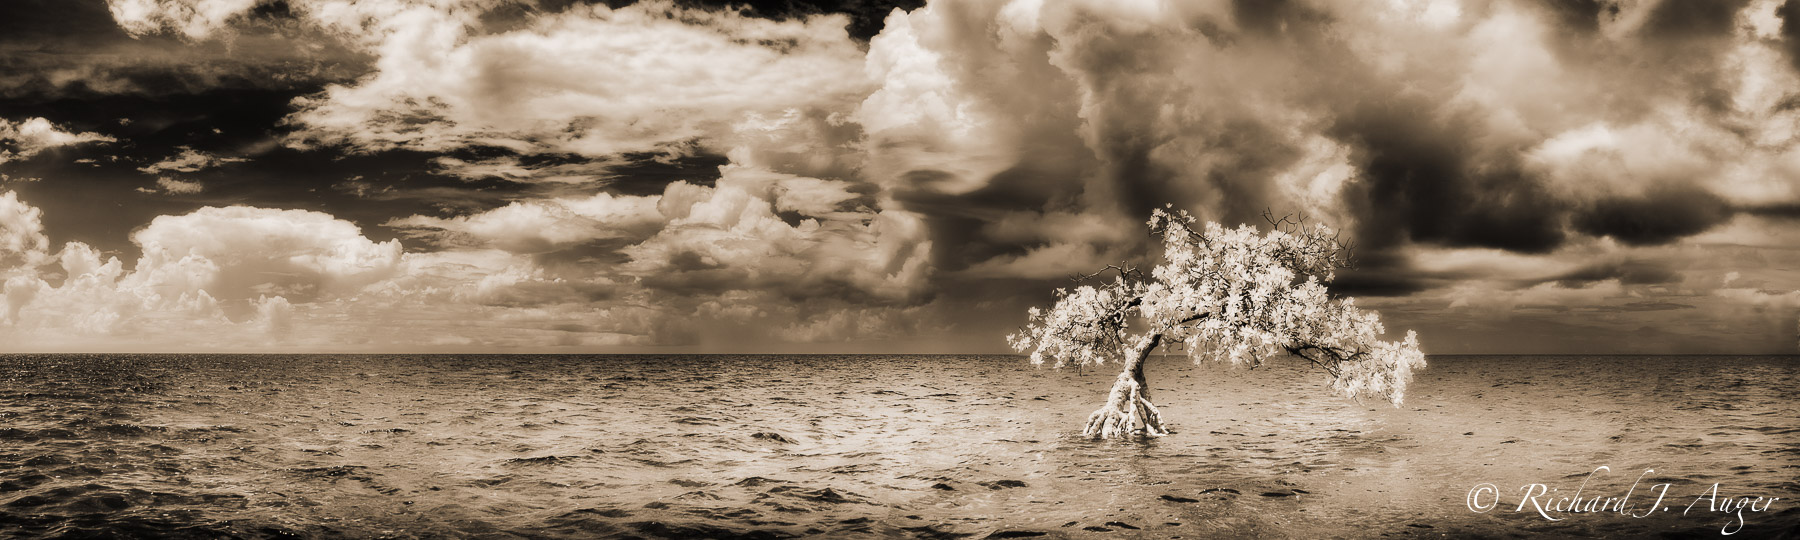 Long Mangrove State Park, Florida, Storm, Moody, Sepia, Monochrome, light, photograph, photographer, water, landscape